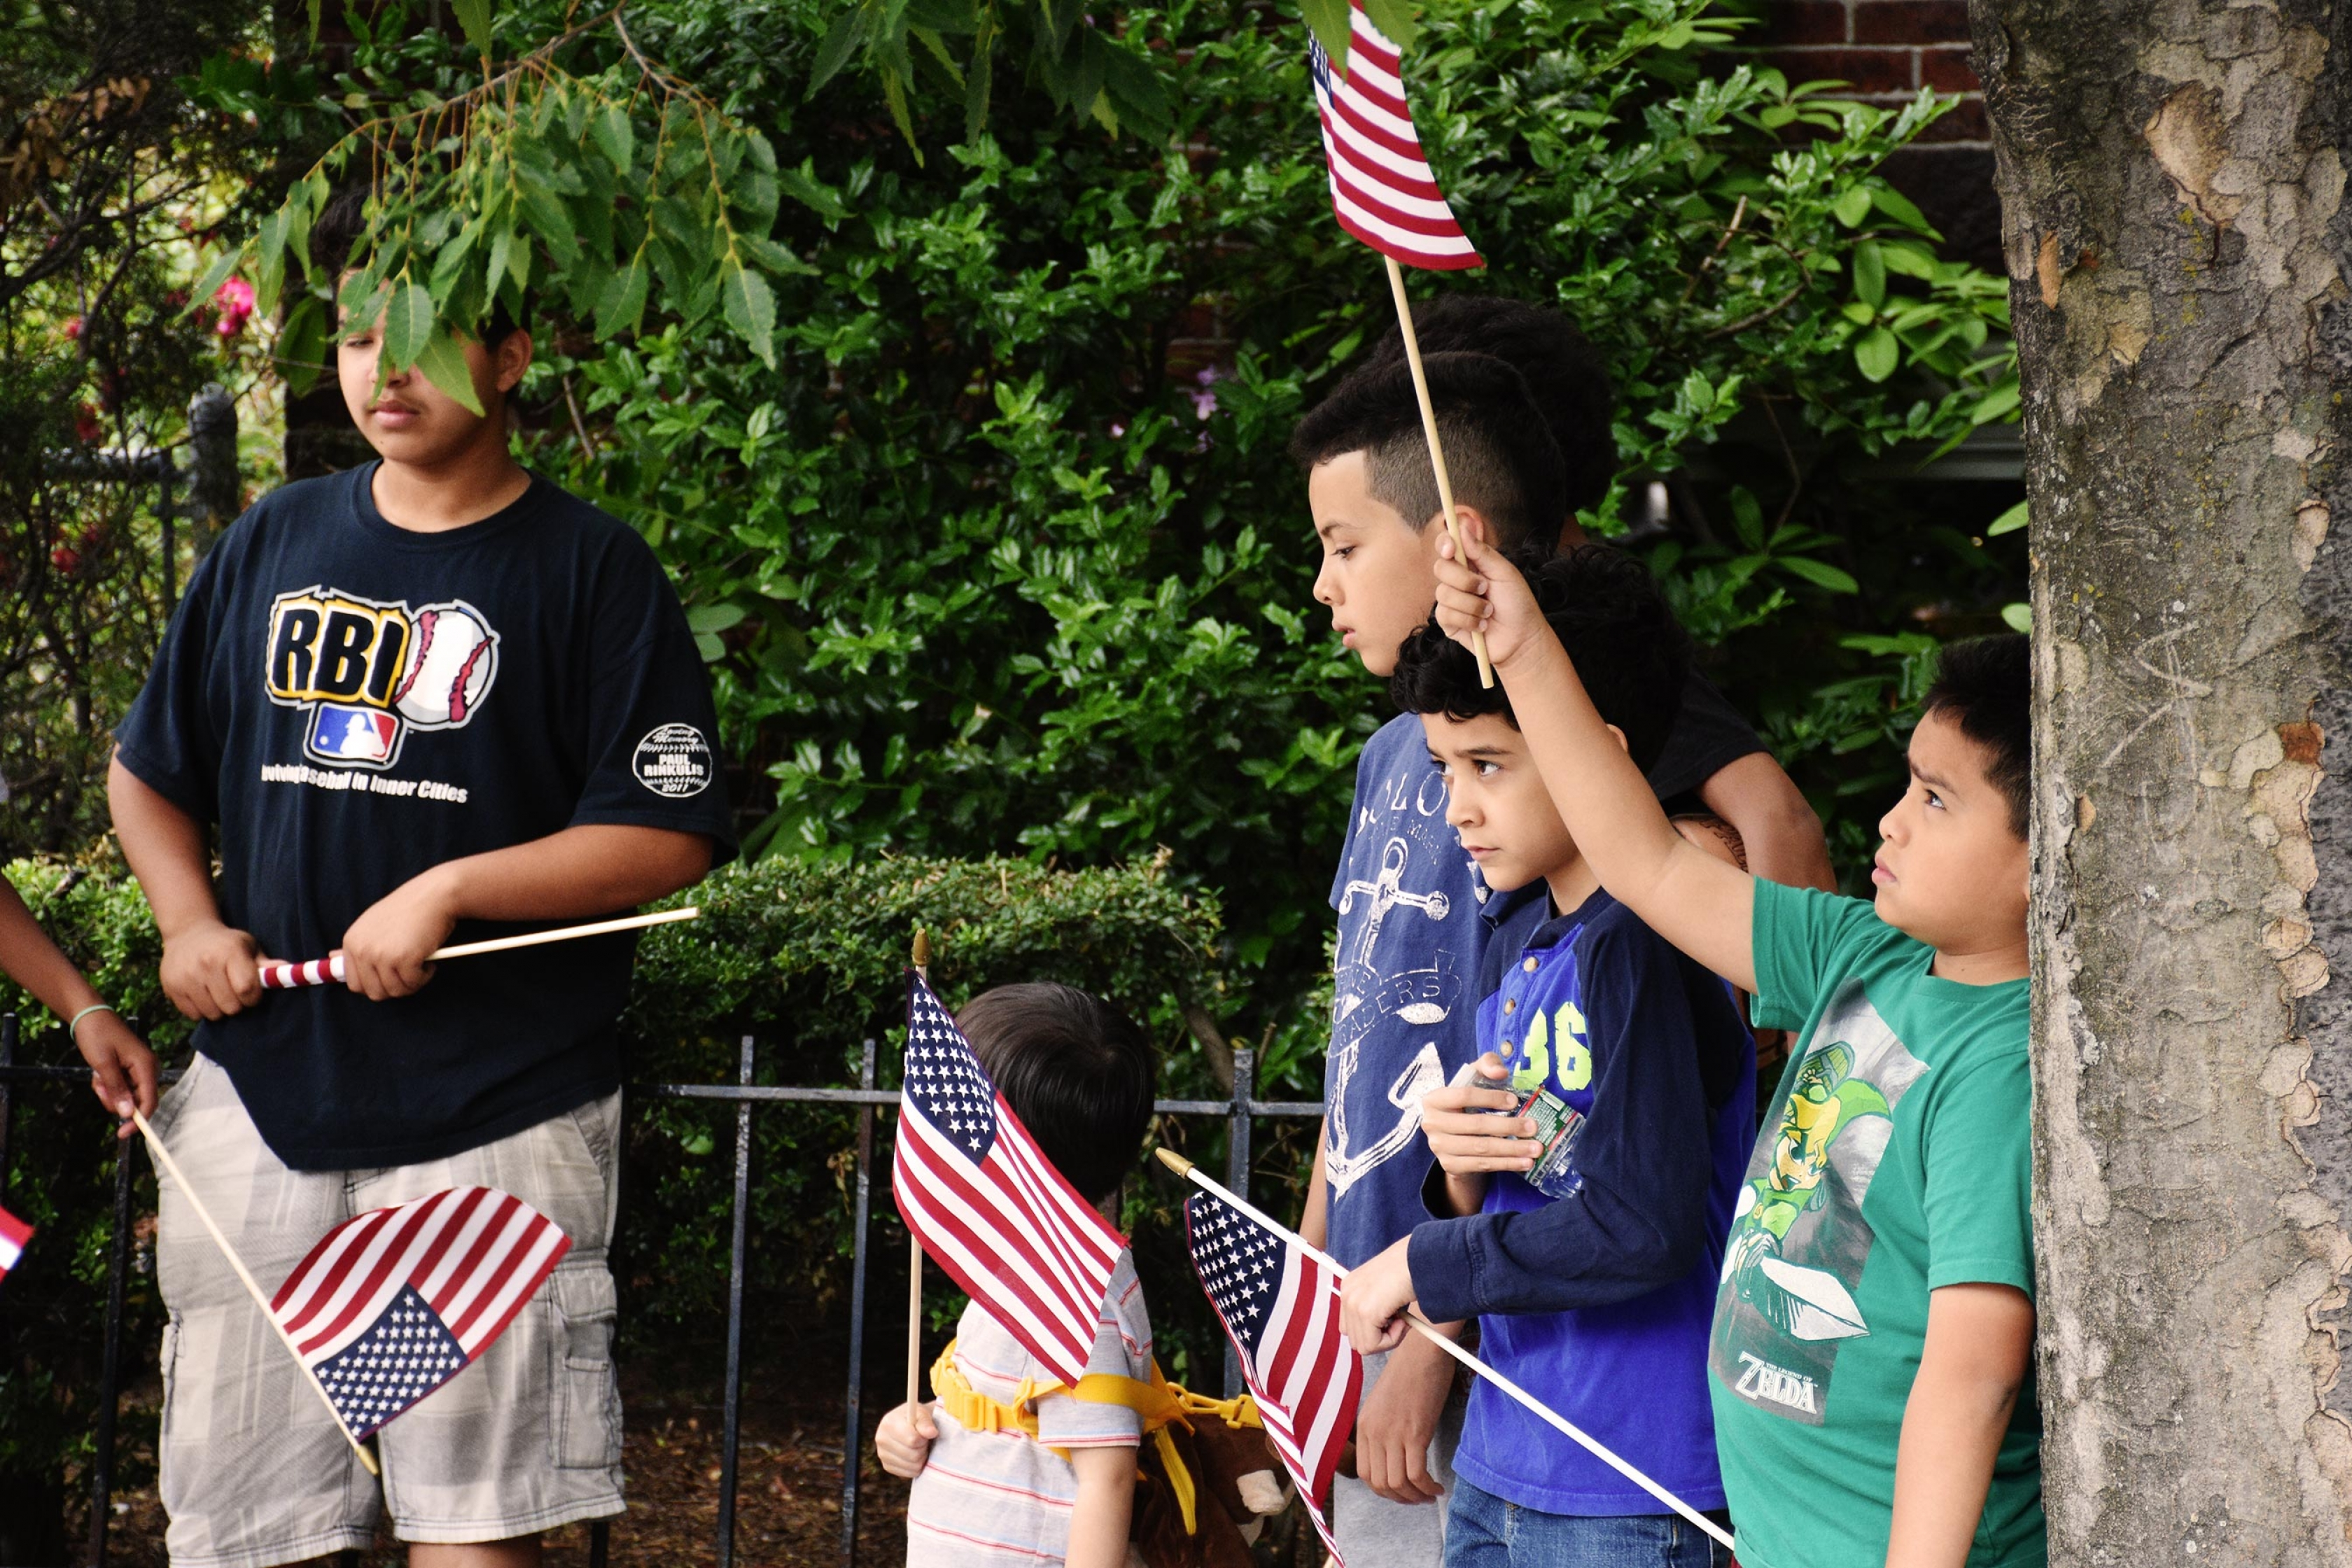 Kids waving flags at the Bunker Hill Parade in Boston.